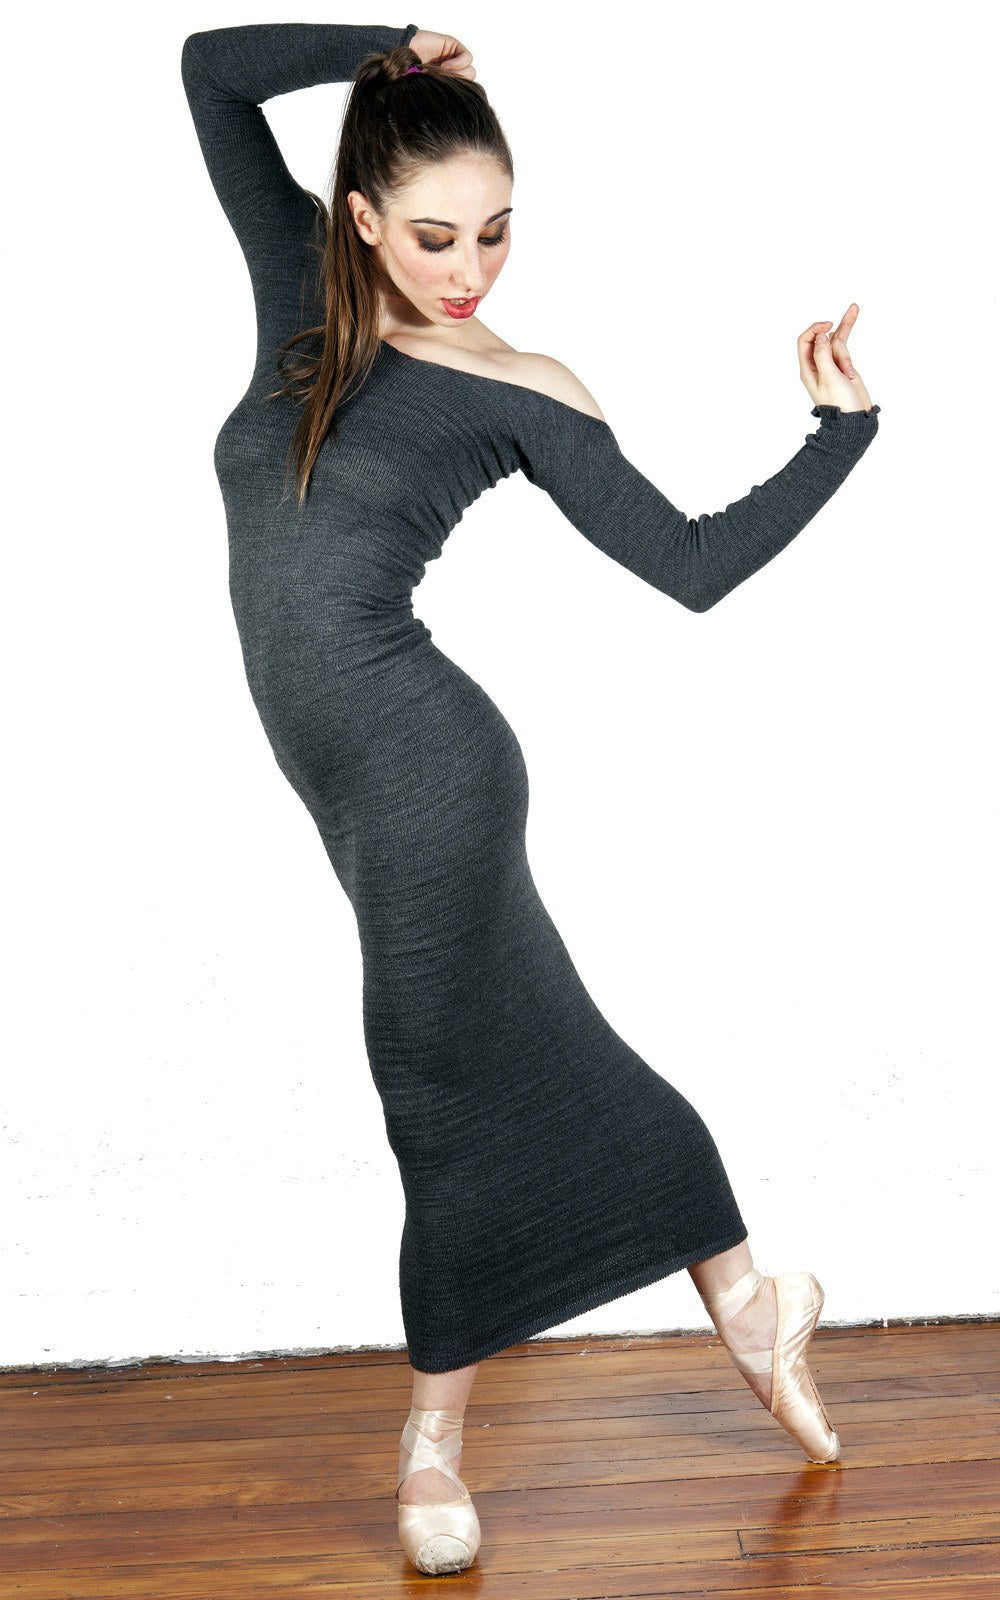 Elegant Head Turning Ankle Length Stretch Knit Sweater Dress KD dance New York Made In USA @KDdanceNewYork #MadeInUSA - 3